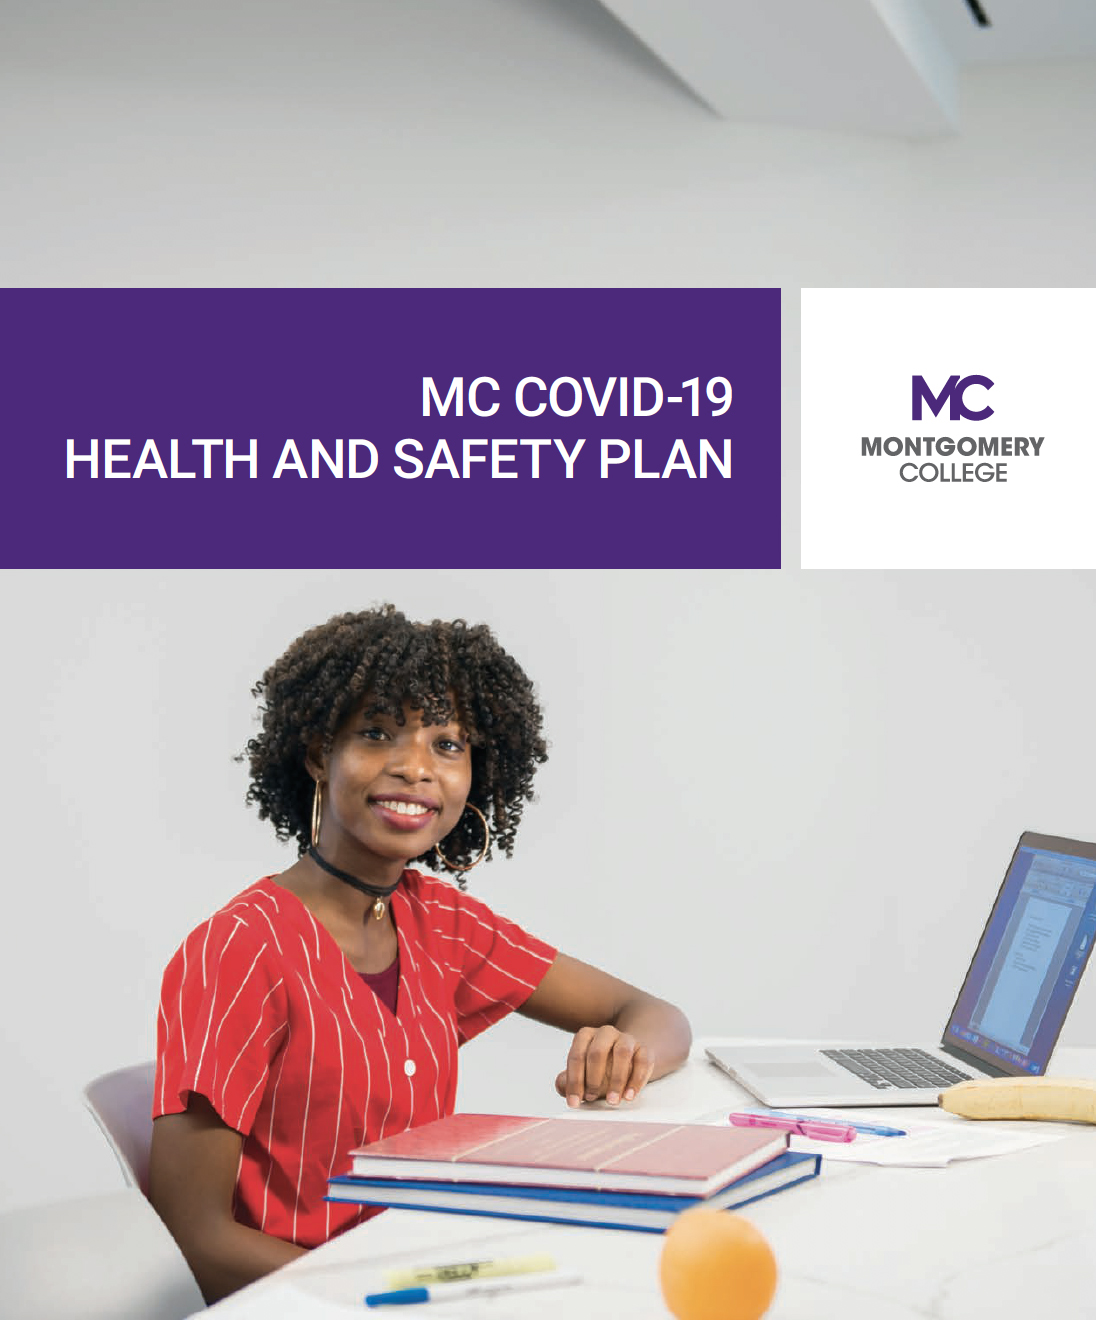 MC COVID-19 Health and Safety Plan